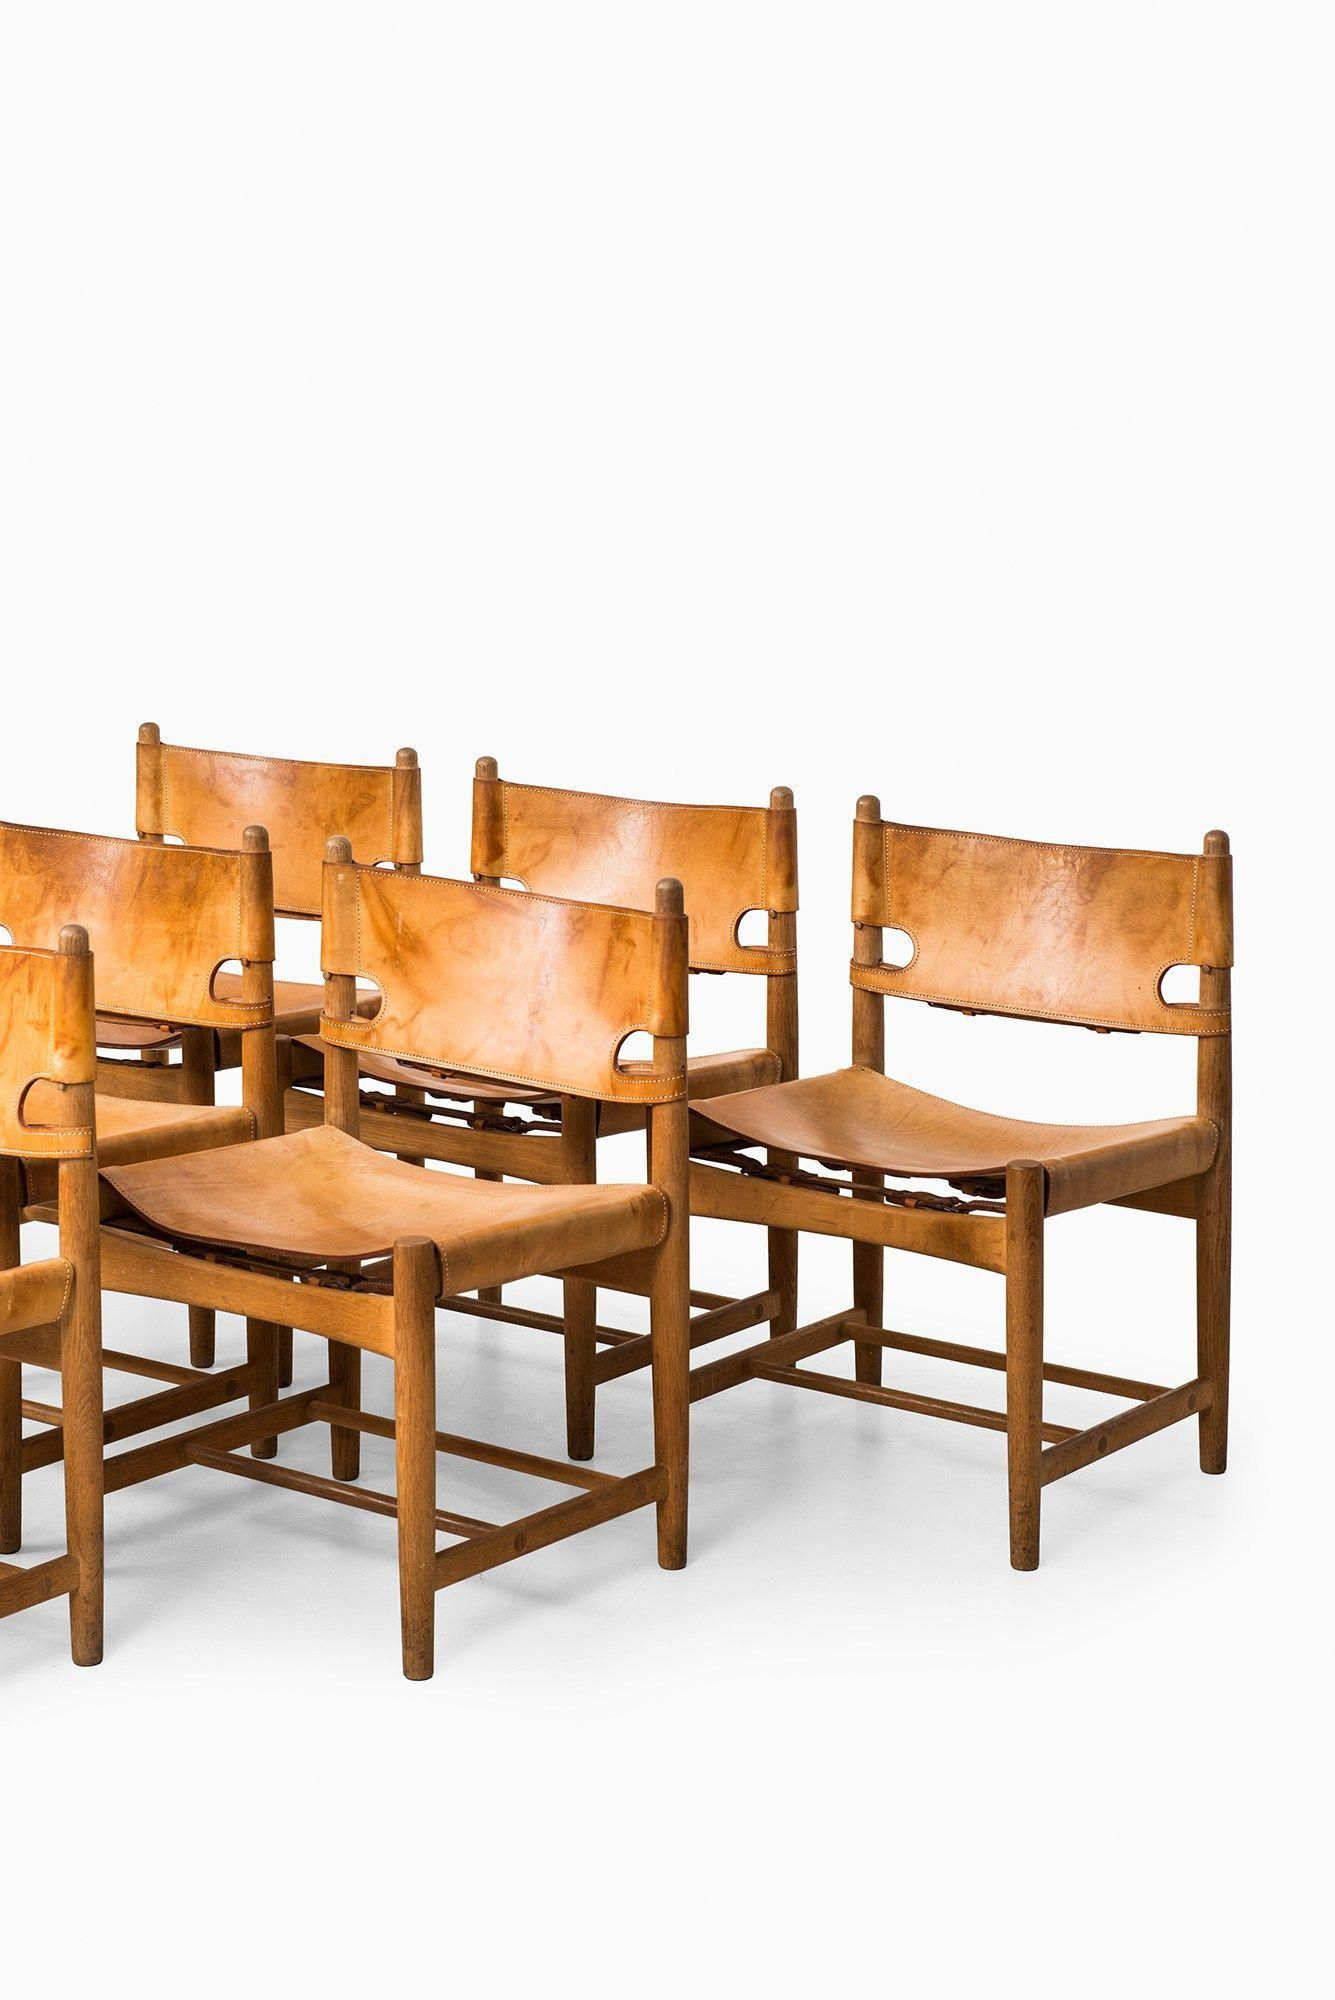 Chair Dolly For Stackable Chairs Cheapdiningroomchairs Referral 8596879945 Dining Chairs Spanish Dining Chairs Furniture